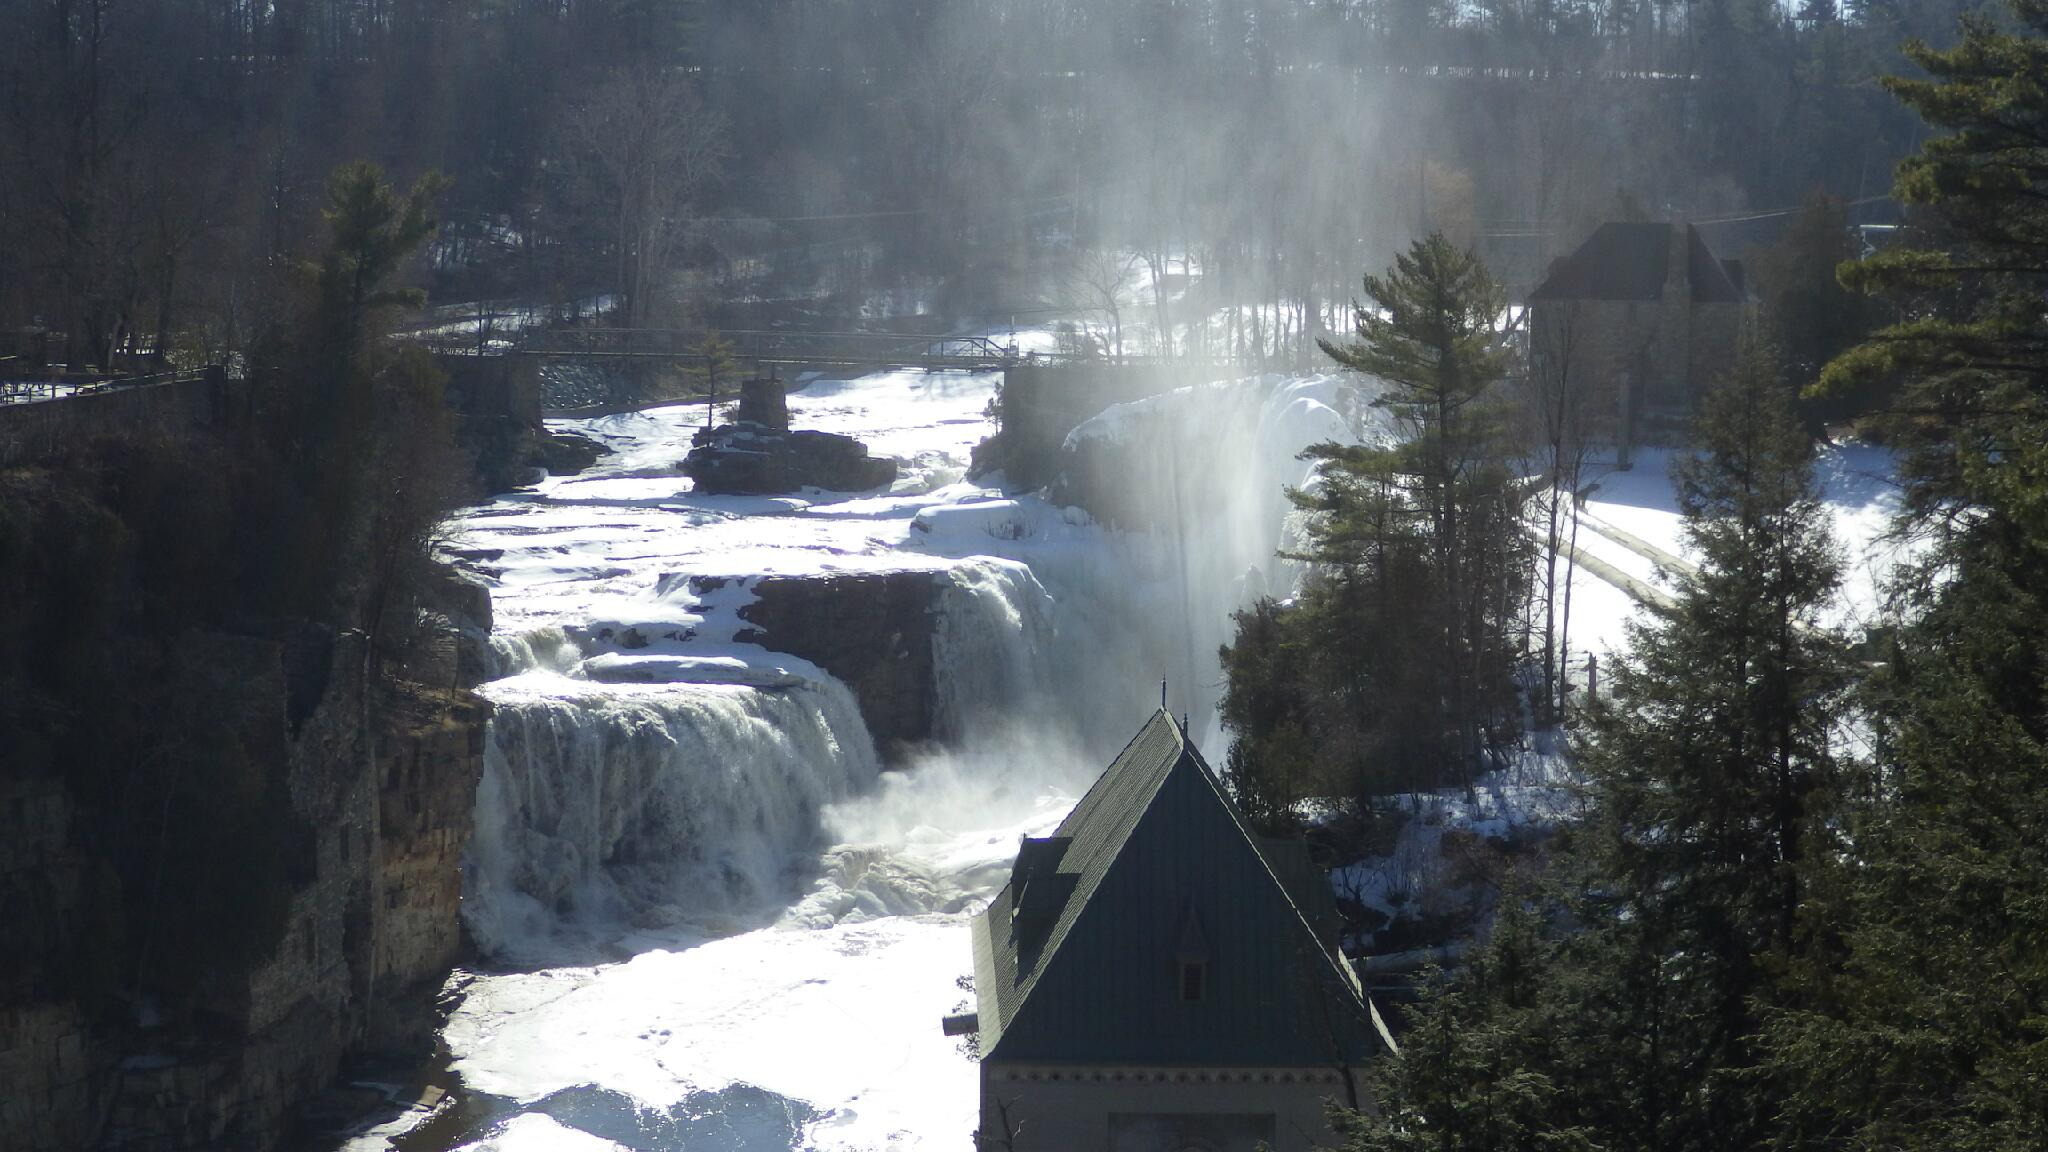 Ausable Chasm on a beautiful spring day. #adirondacks http://t.co/rTjCiOvqYP